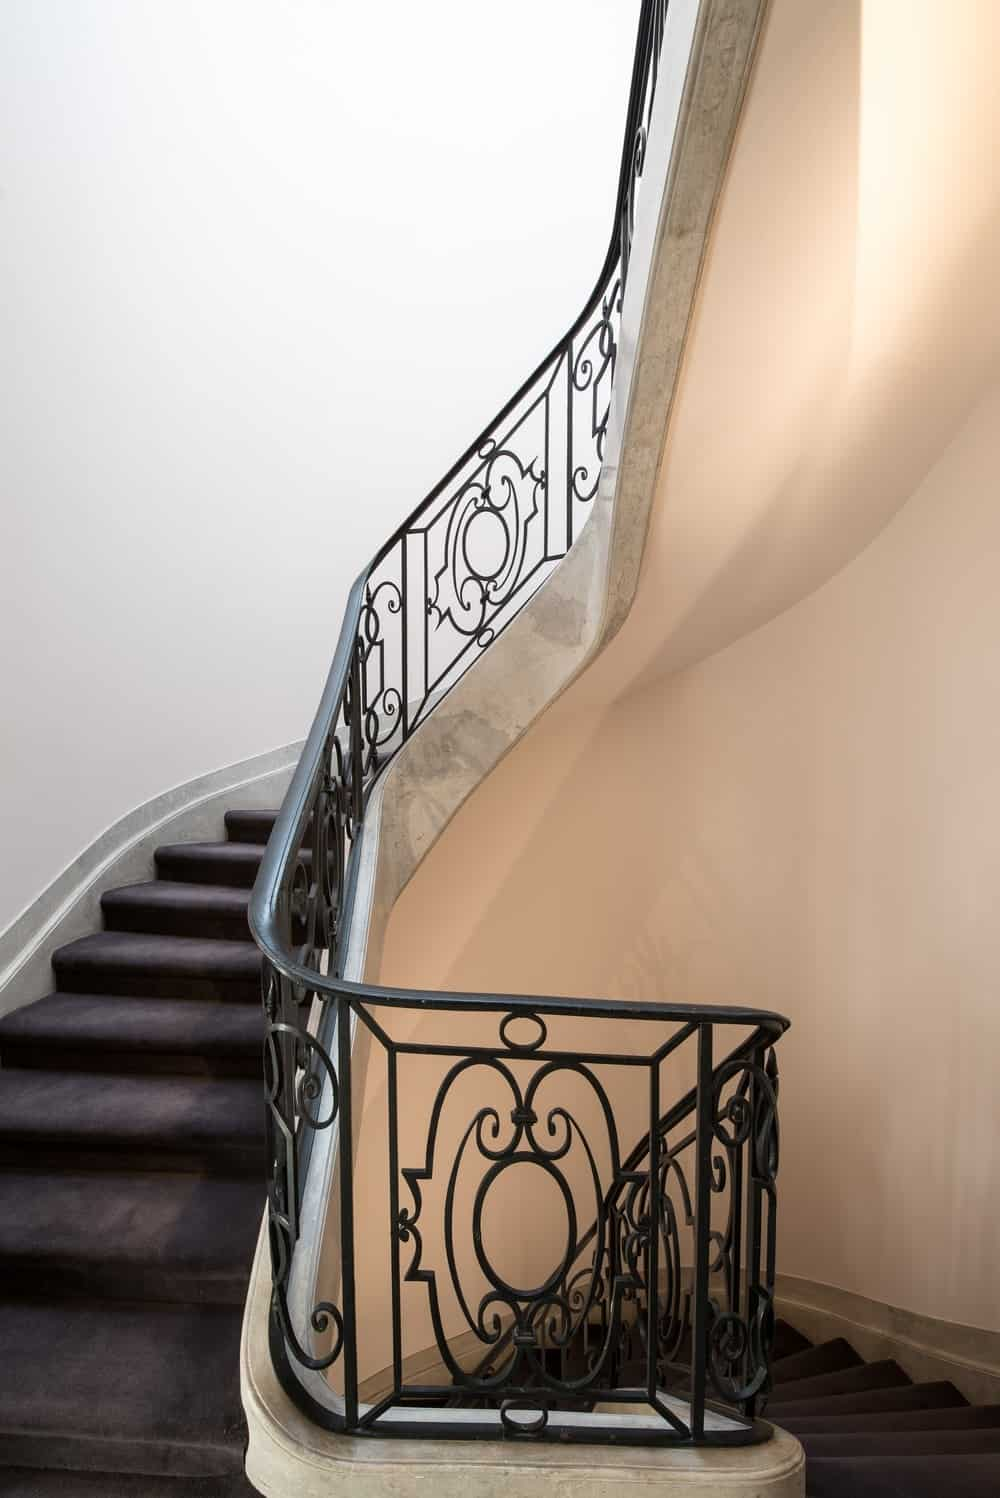 Contemporary Spiral Staircase With White Walls. Photo Credit: Mickaël  Martins Afonso